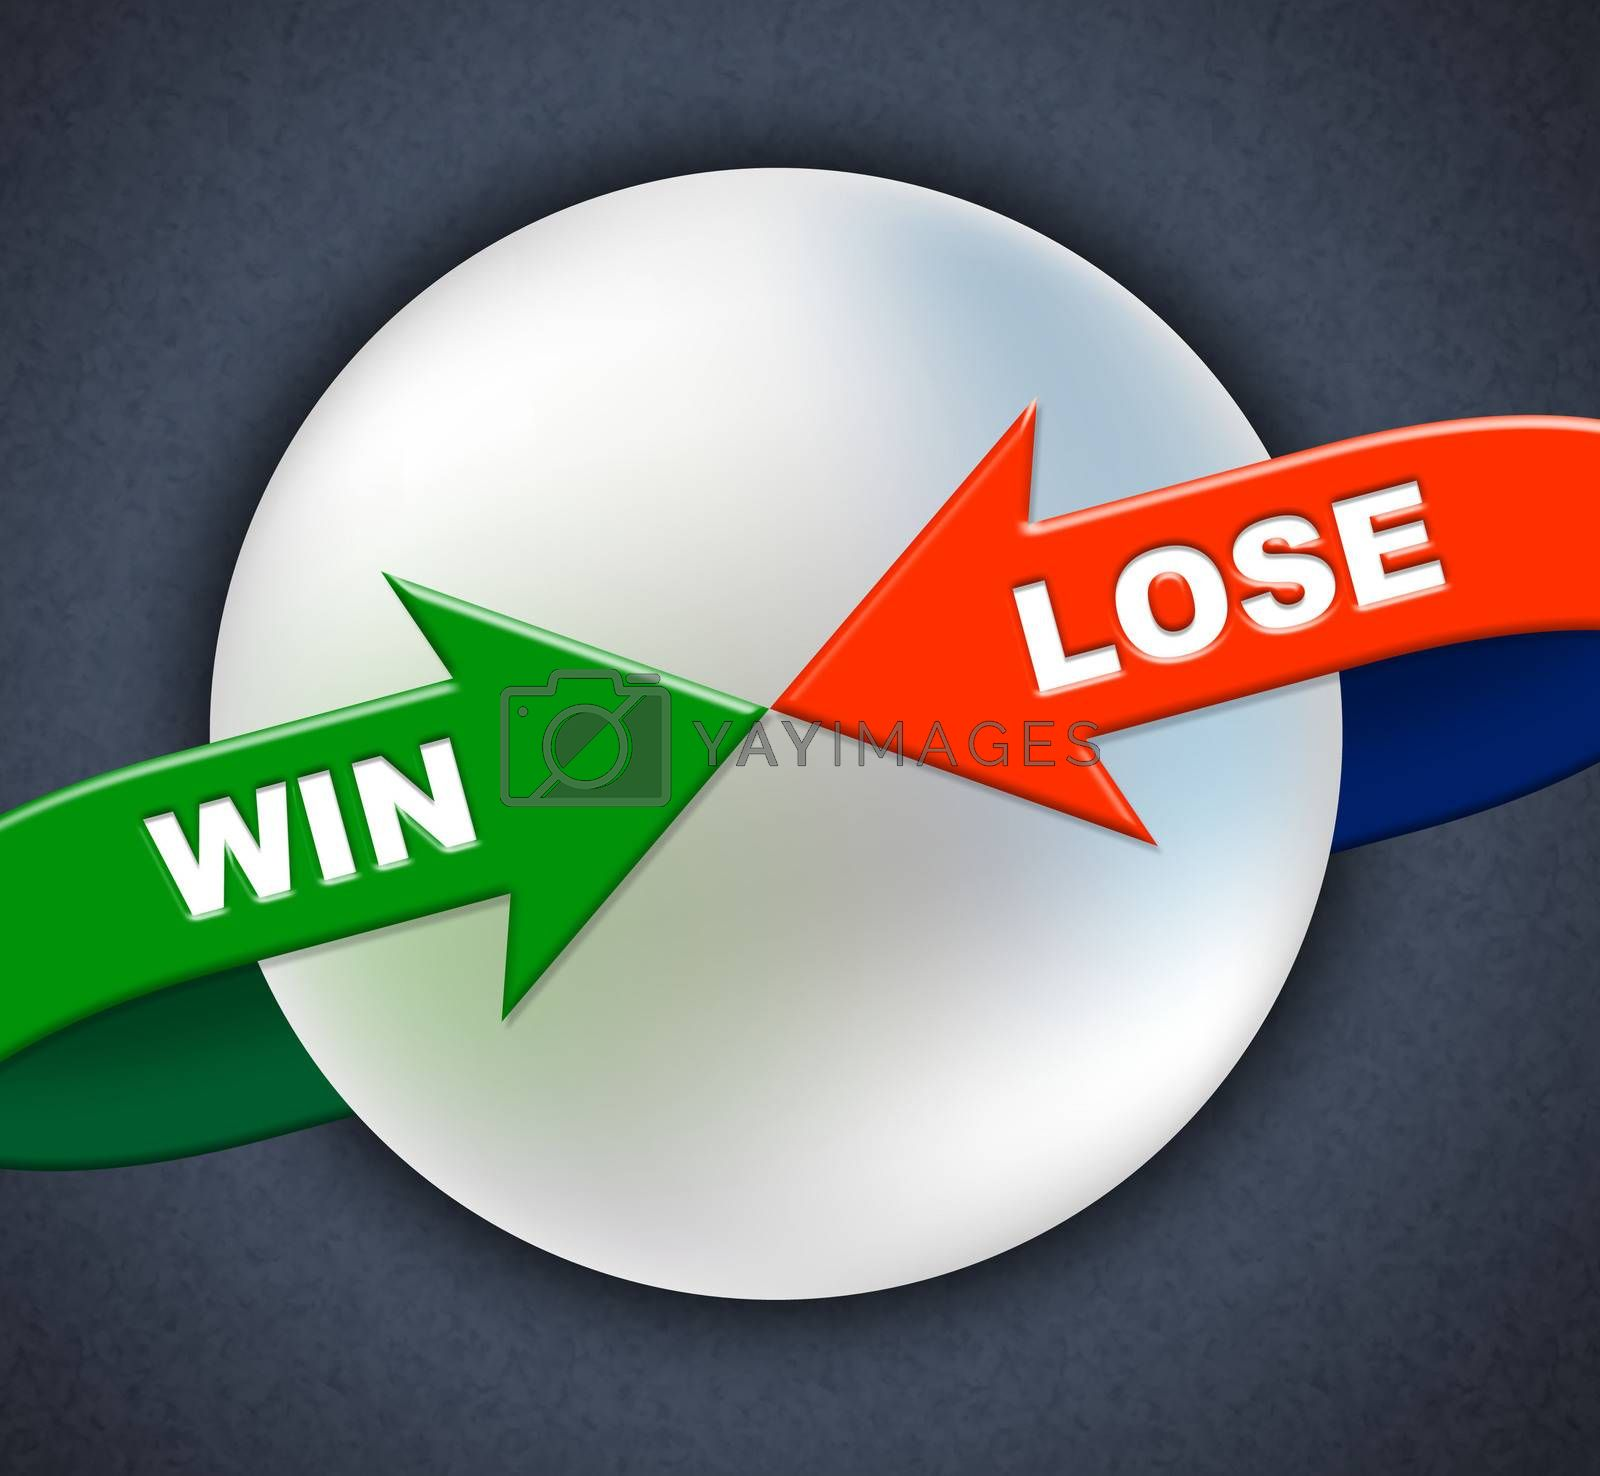 Win Lose Arrows Shows Victory Success And Failing by stuartmiles